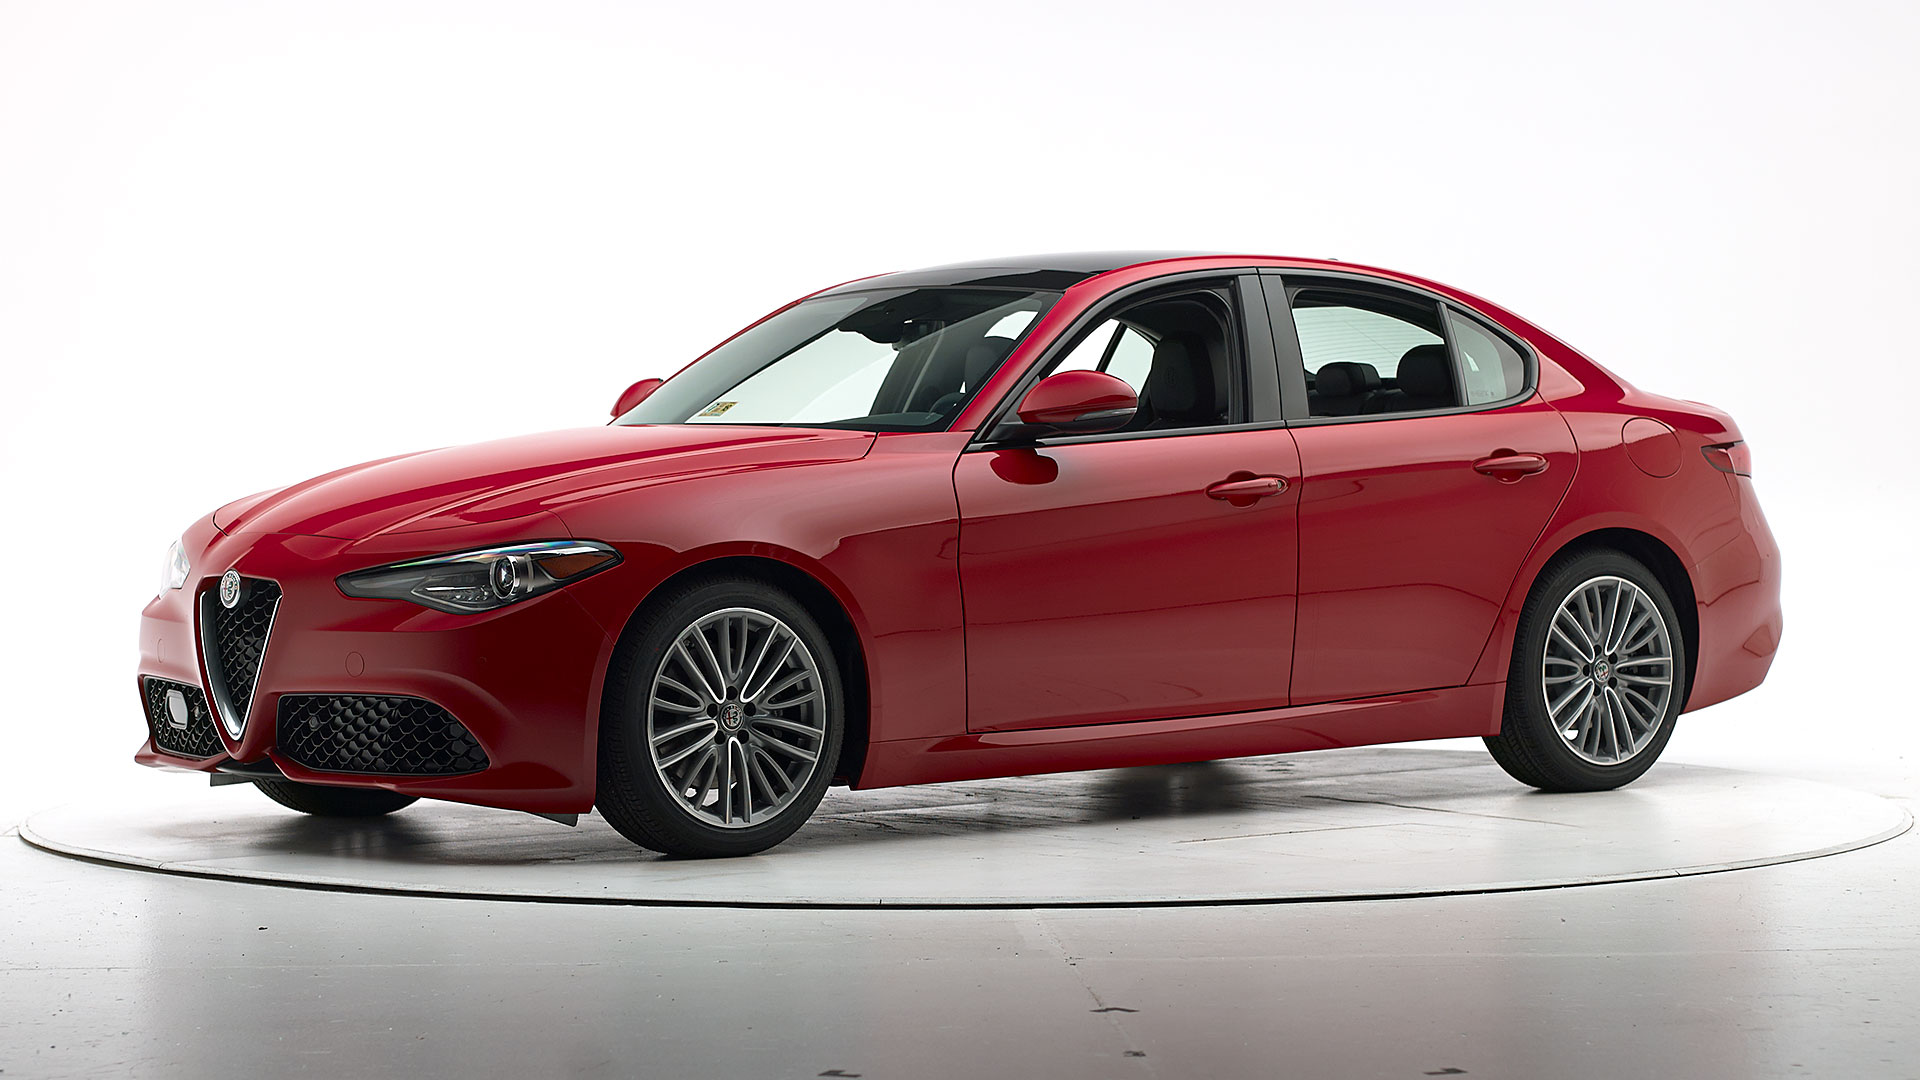 2018 Alfa Romeo Giulia 4-door sedan